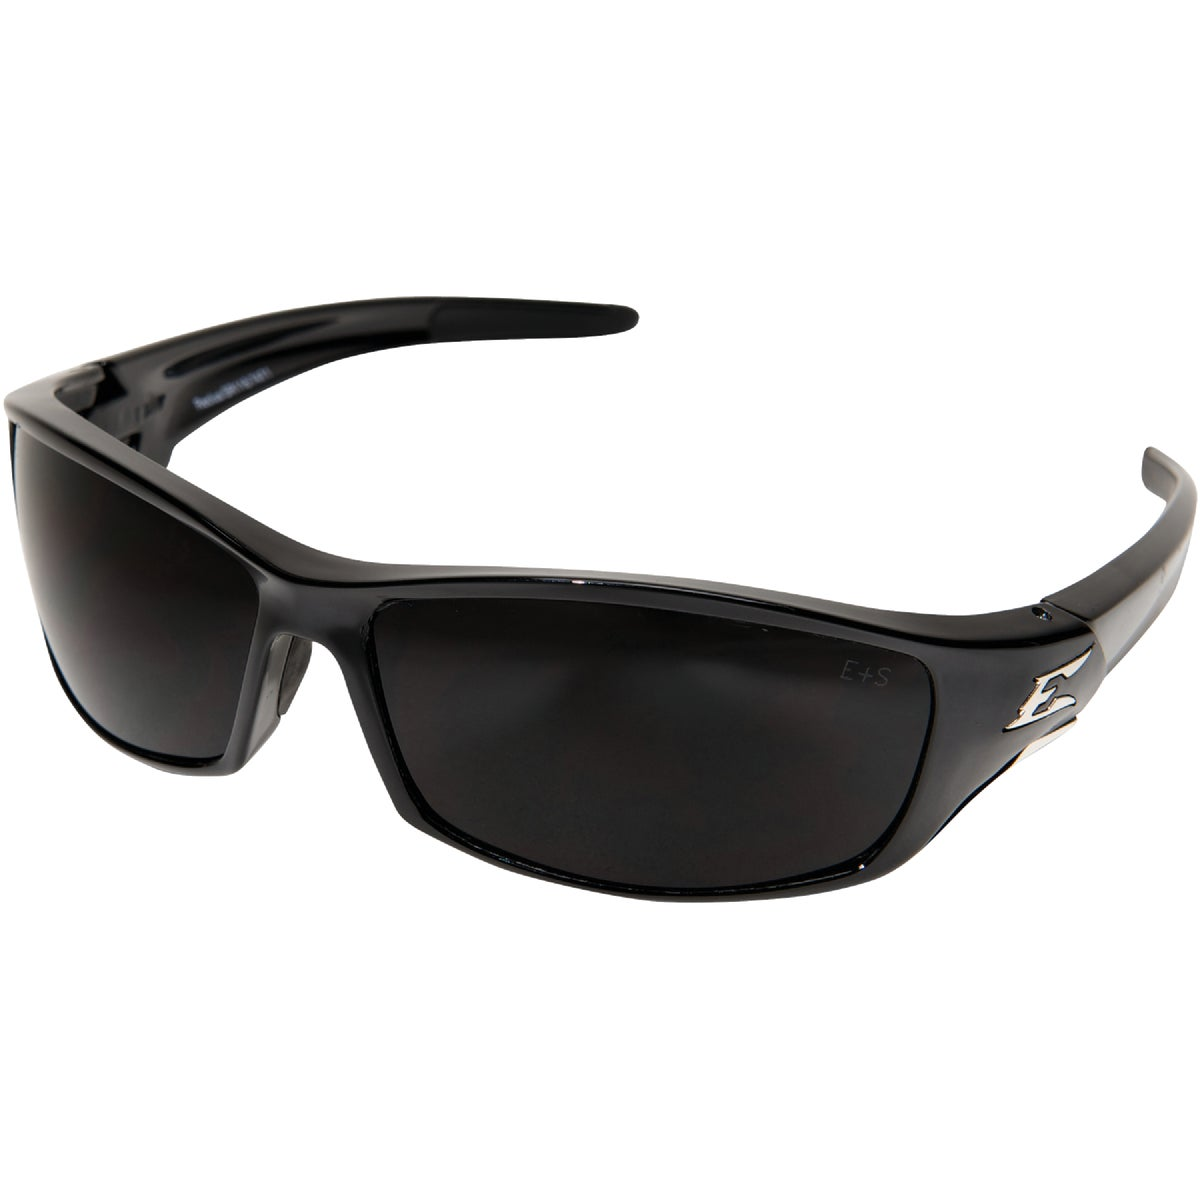 RECLUS BLK/SMOKE LENS - SR116 by Edge Eyewear